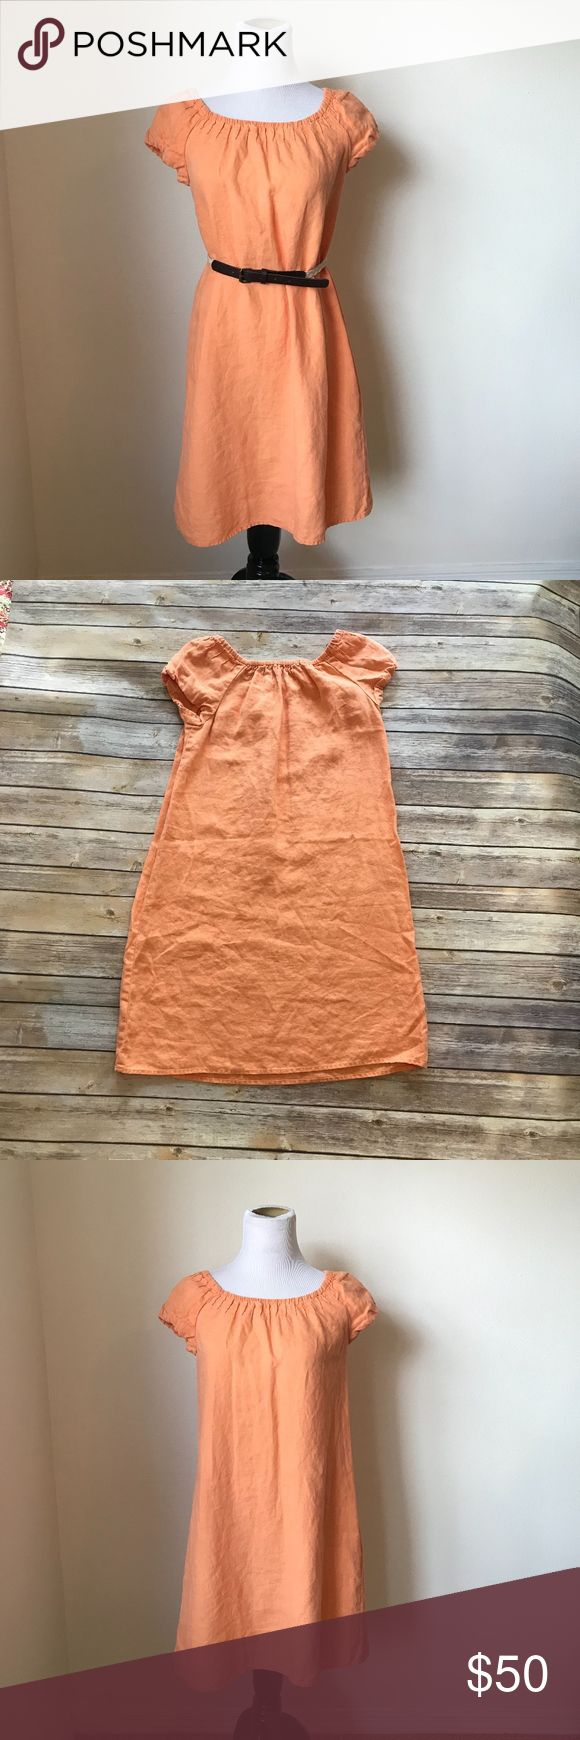 Tommy Bahama Orange Linen Dress Fun and summer orange linen dress from Tommy Bahama.  Loose fitting and flowy but add a belt and you can define your waistline.  Has elastic scoop neckline and cap sleeves.  Belt not included.  Comes from a smoke and pant free home.  Measurements and Size to come shortly. Tommy Bahama Dresses Midi